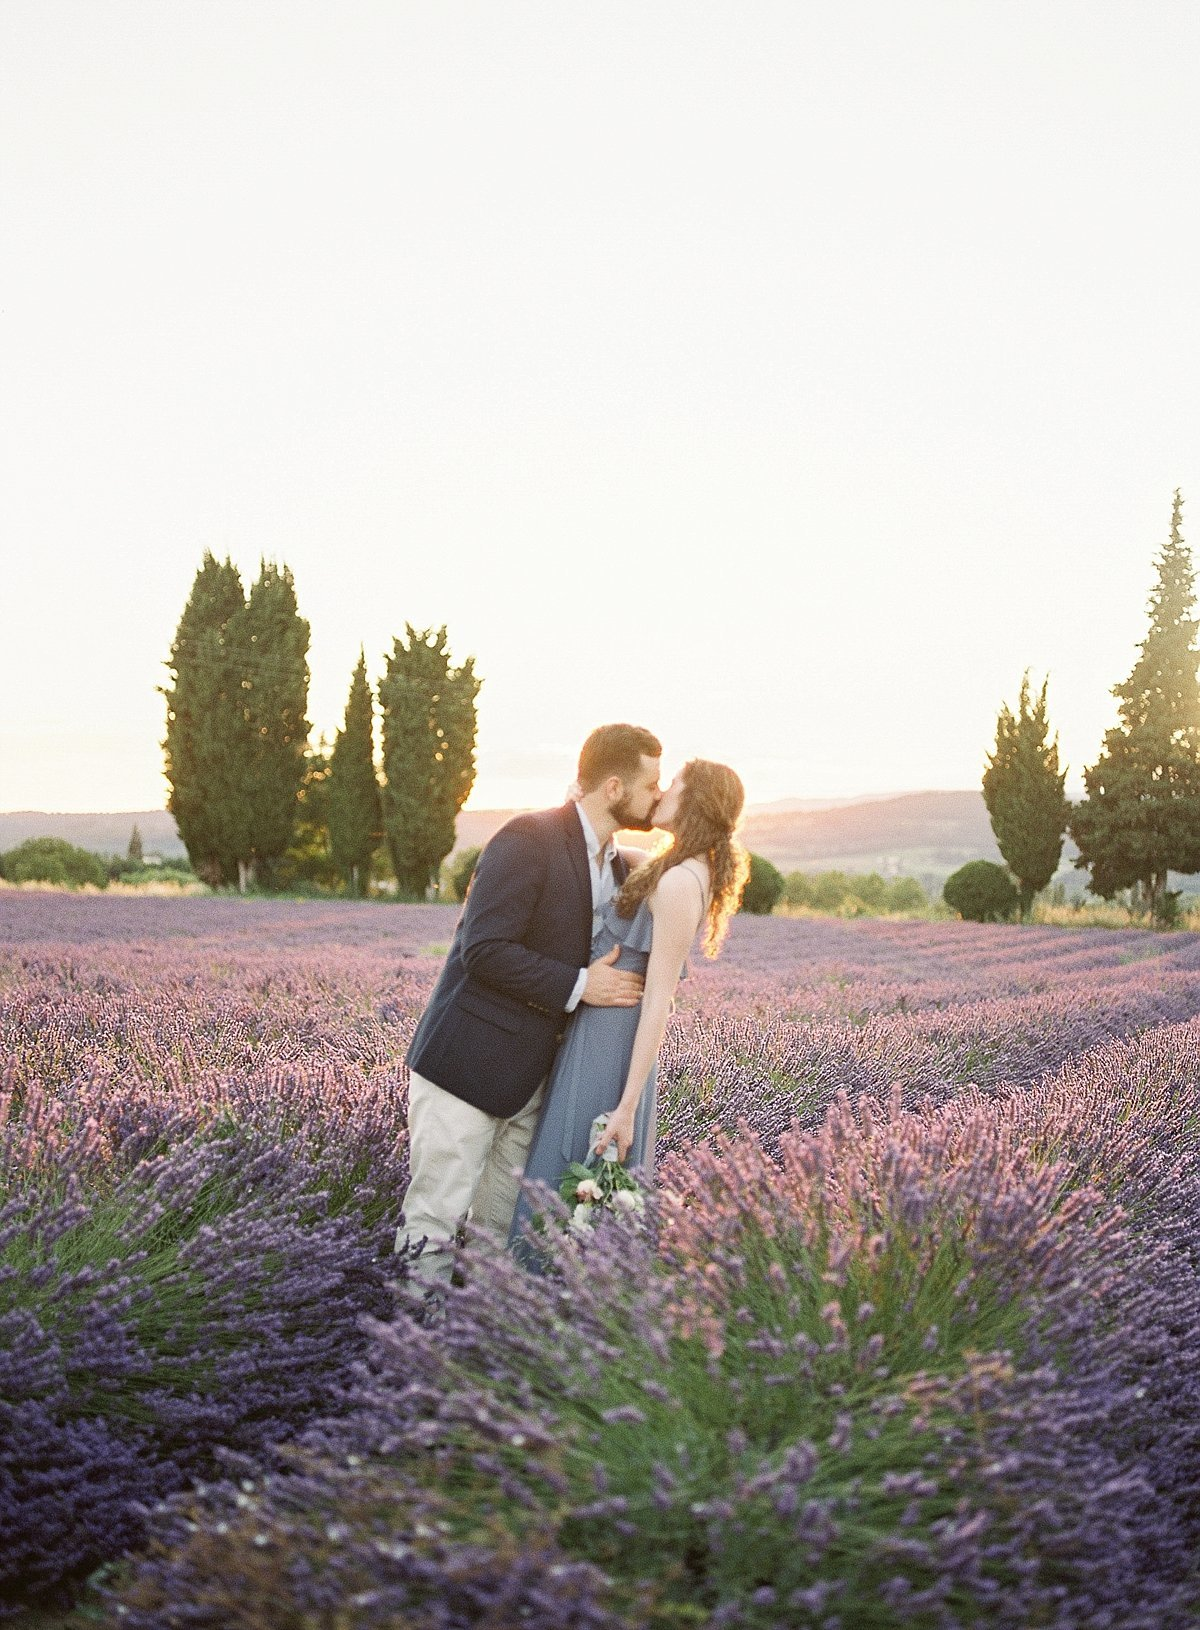 France-lavender-anniversary-session-alicia-yarrish-photography-29